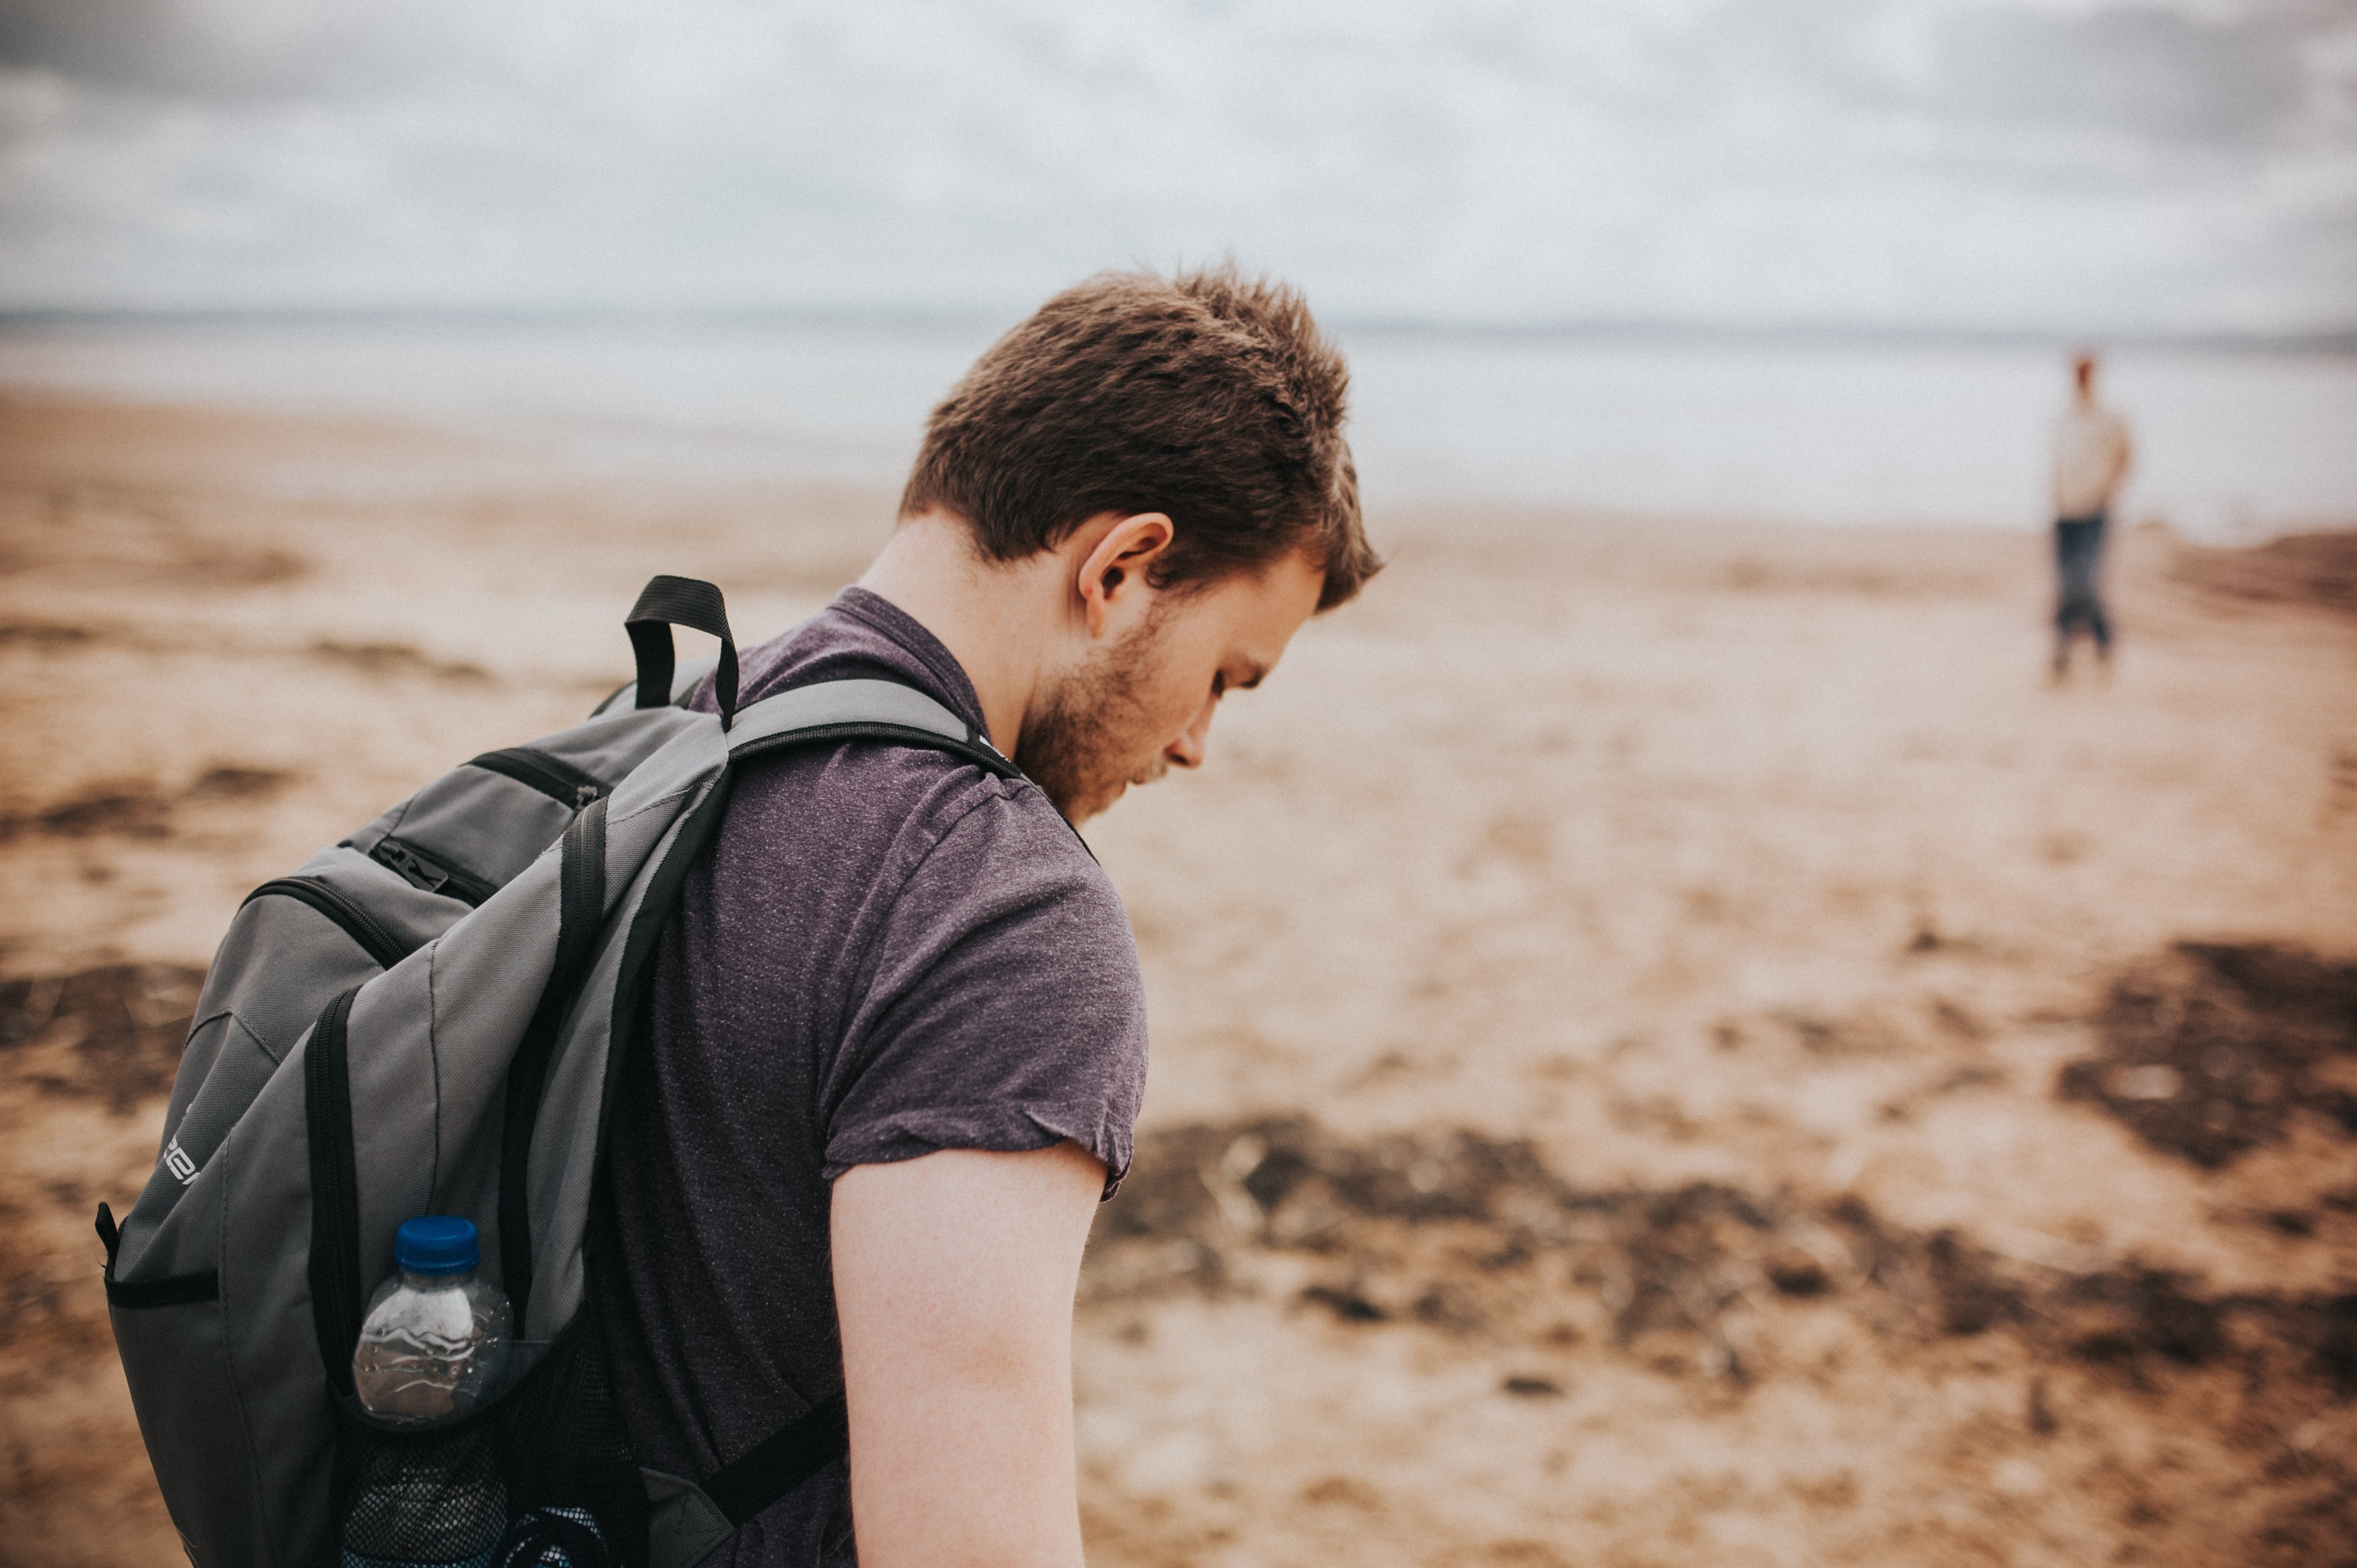 man in gray shirt and backpack beside beach shore during daytime